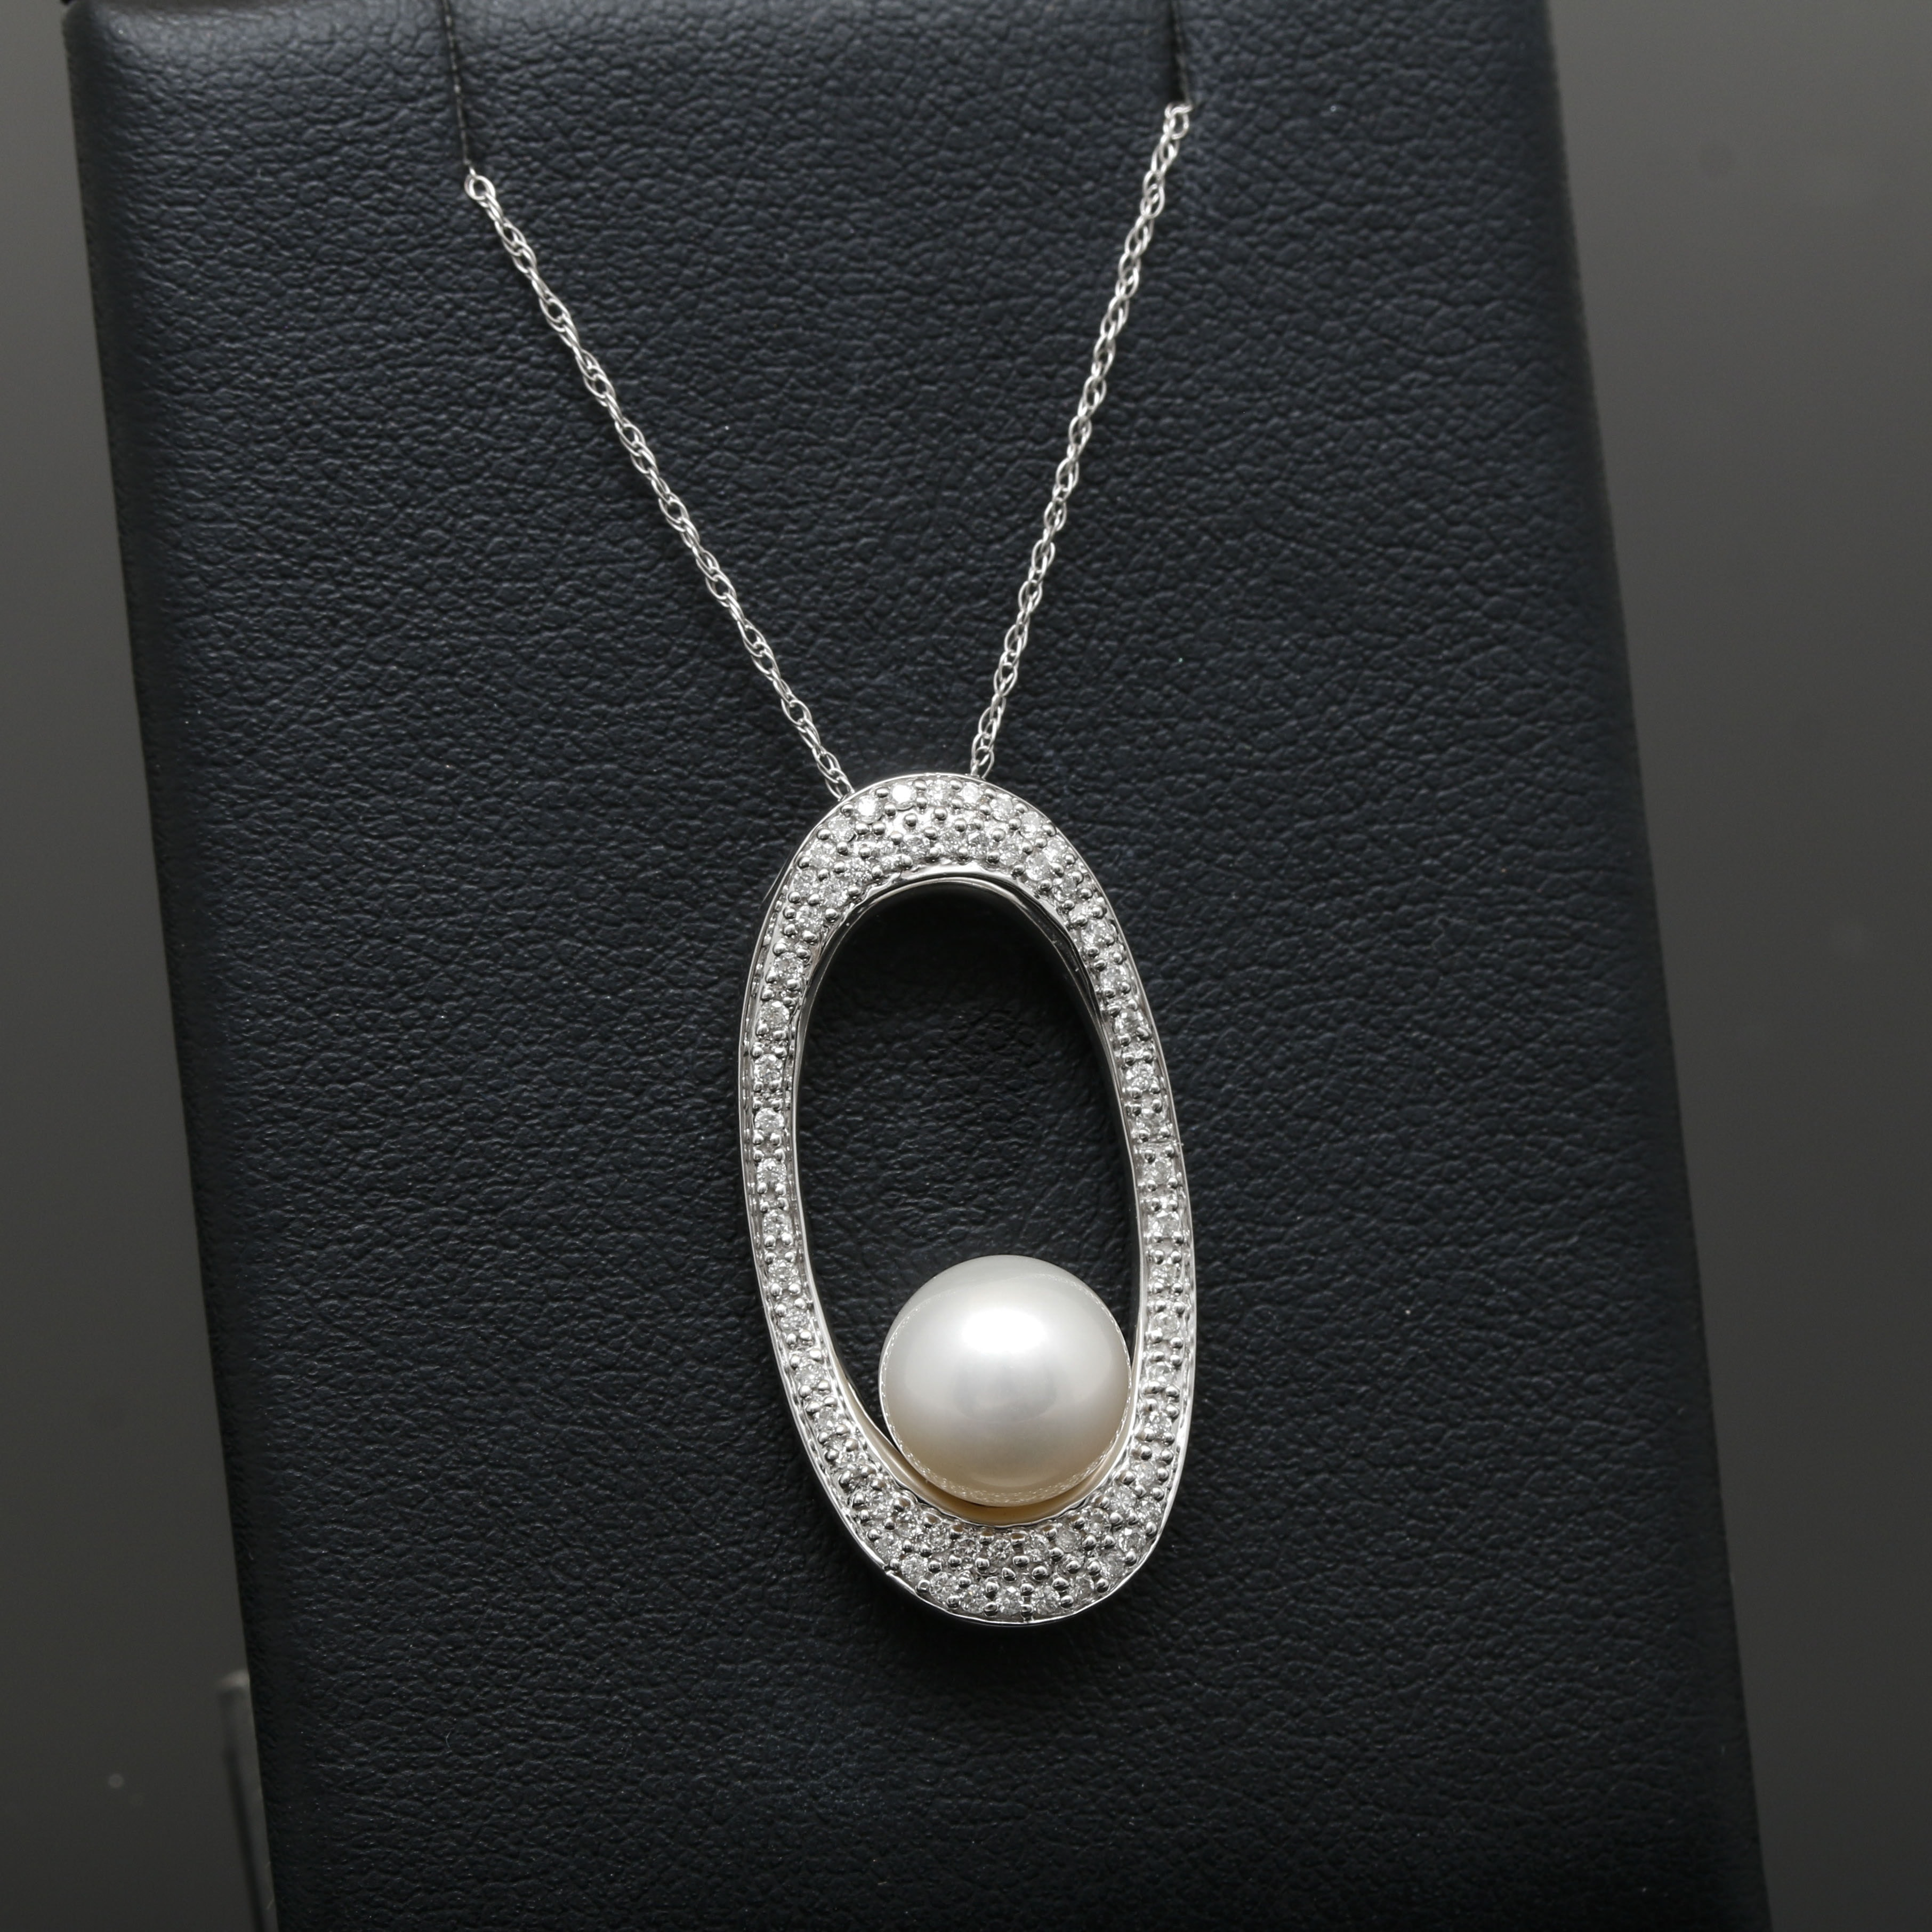 14K White Gold Cultured Pearl and Diamond Pendant Necklace